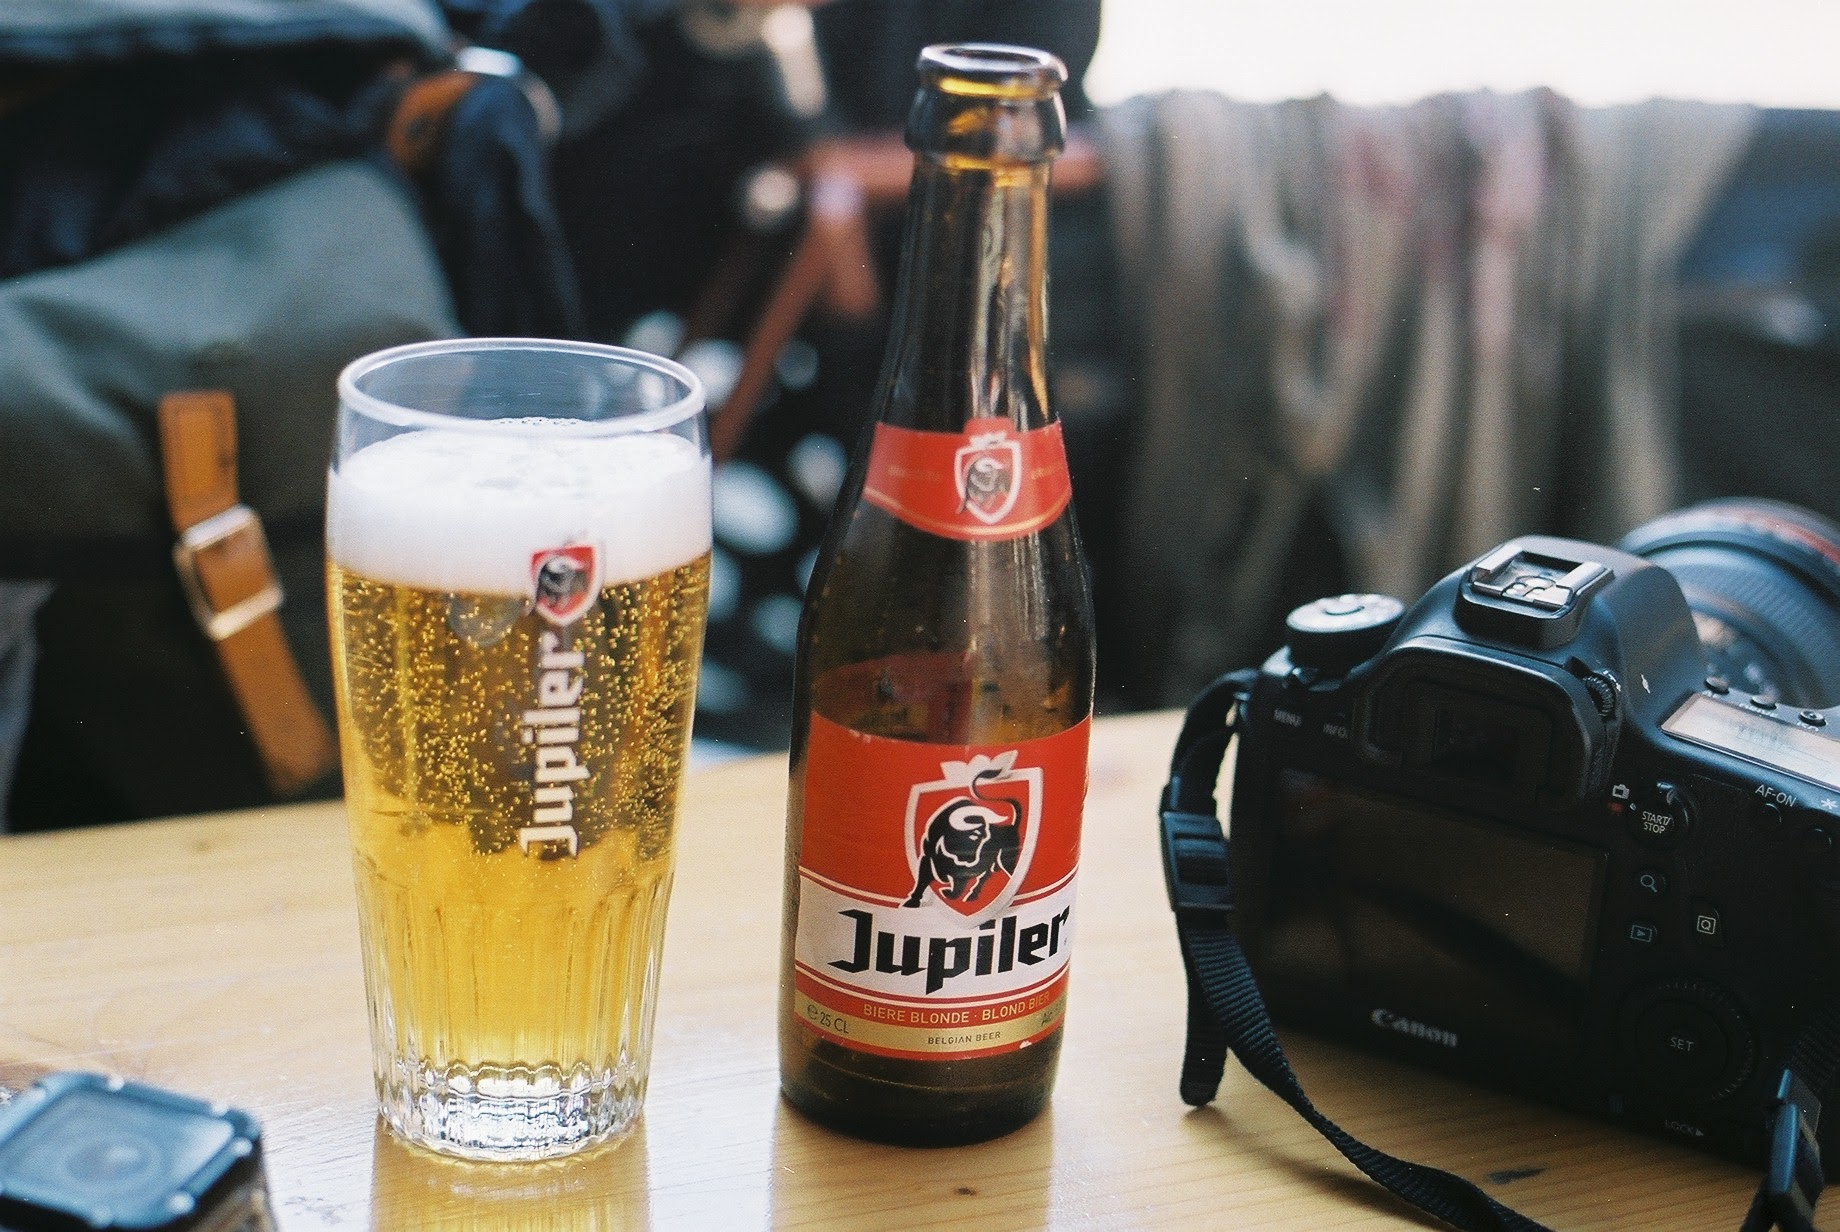 beer, beer blog, travel, travel photography, exploration, adventure, food, foodie food blog, bicycle tourig apocalypse, bikepacking beeer, canon, canon ae-1, film camera, 35mm, leica, bicycle touring apocalypse, bicycle touring, cycle touring